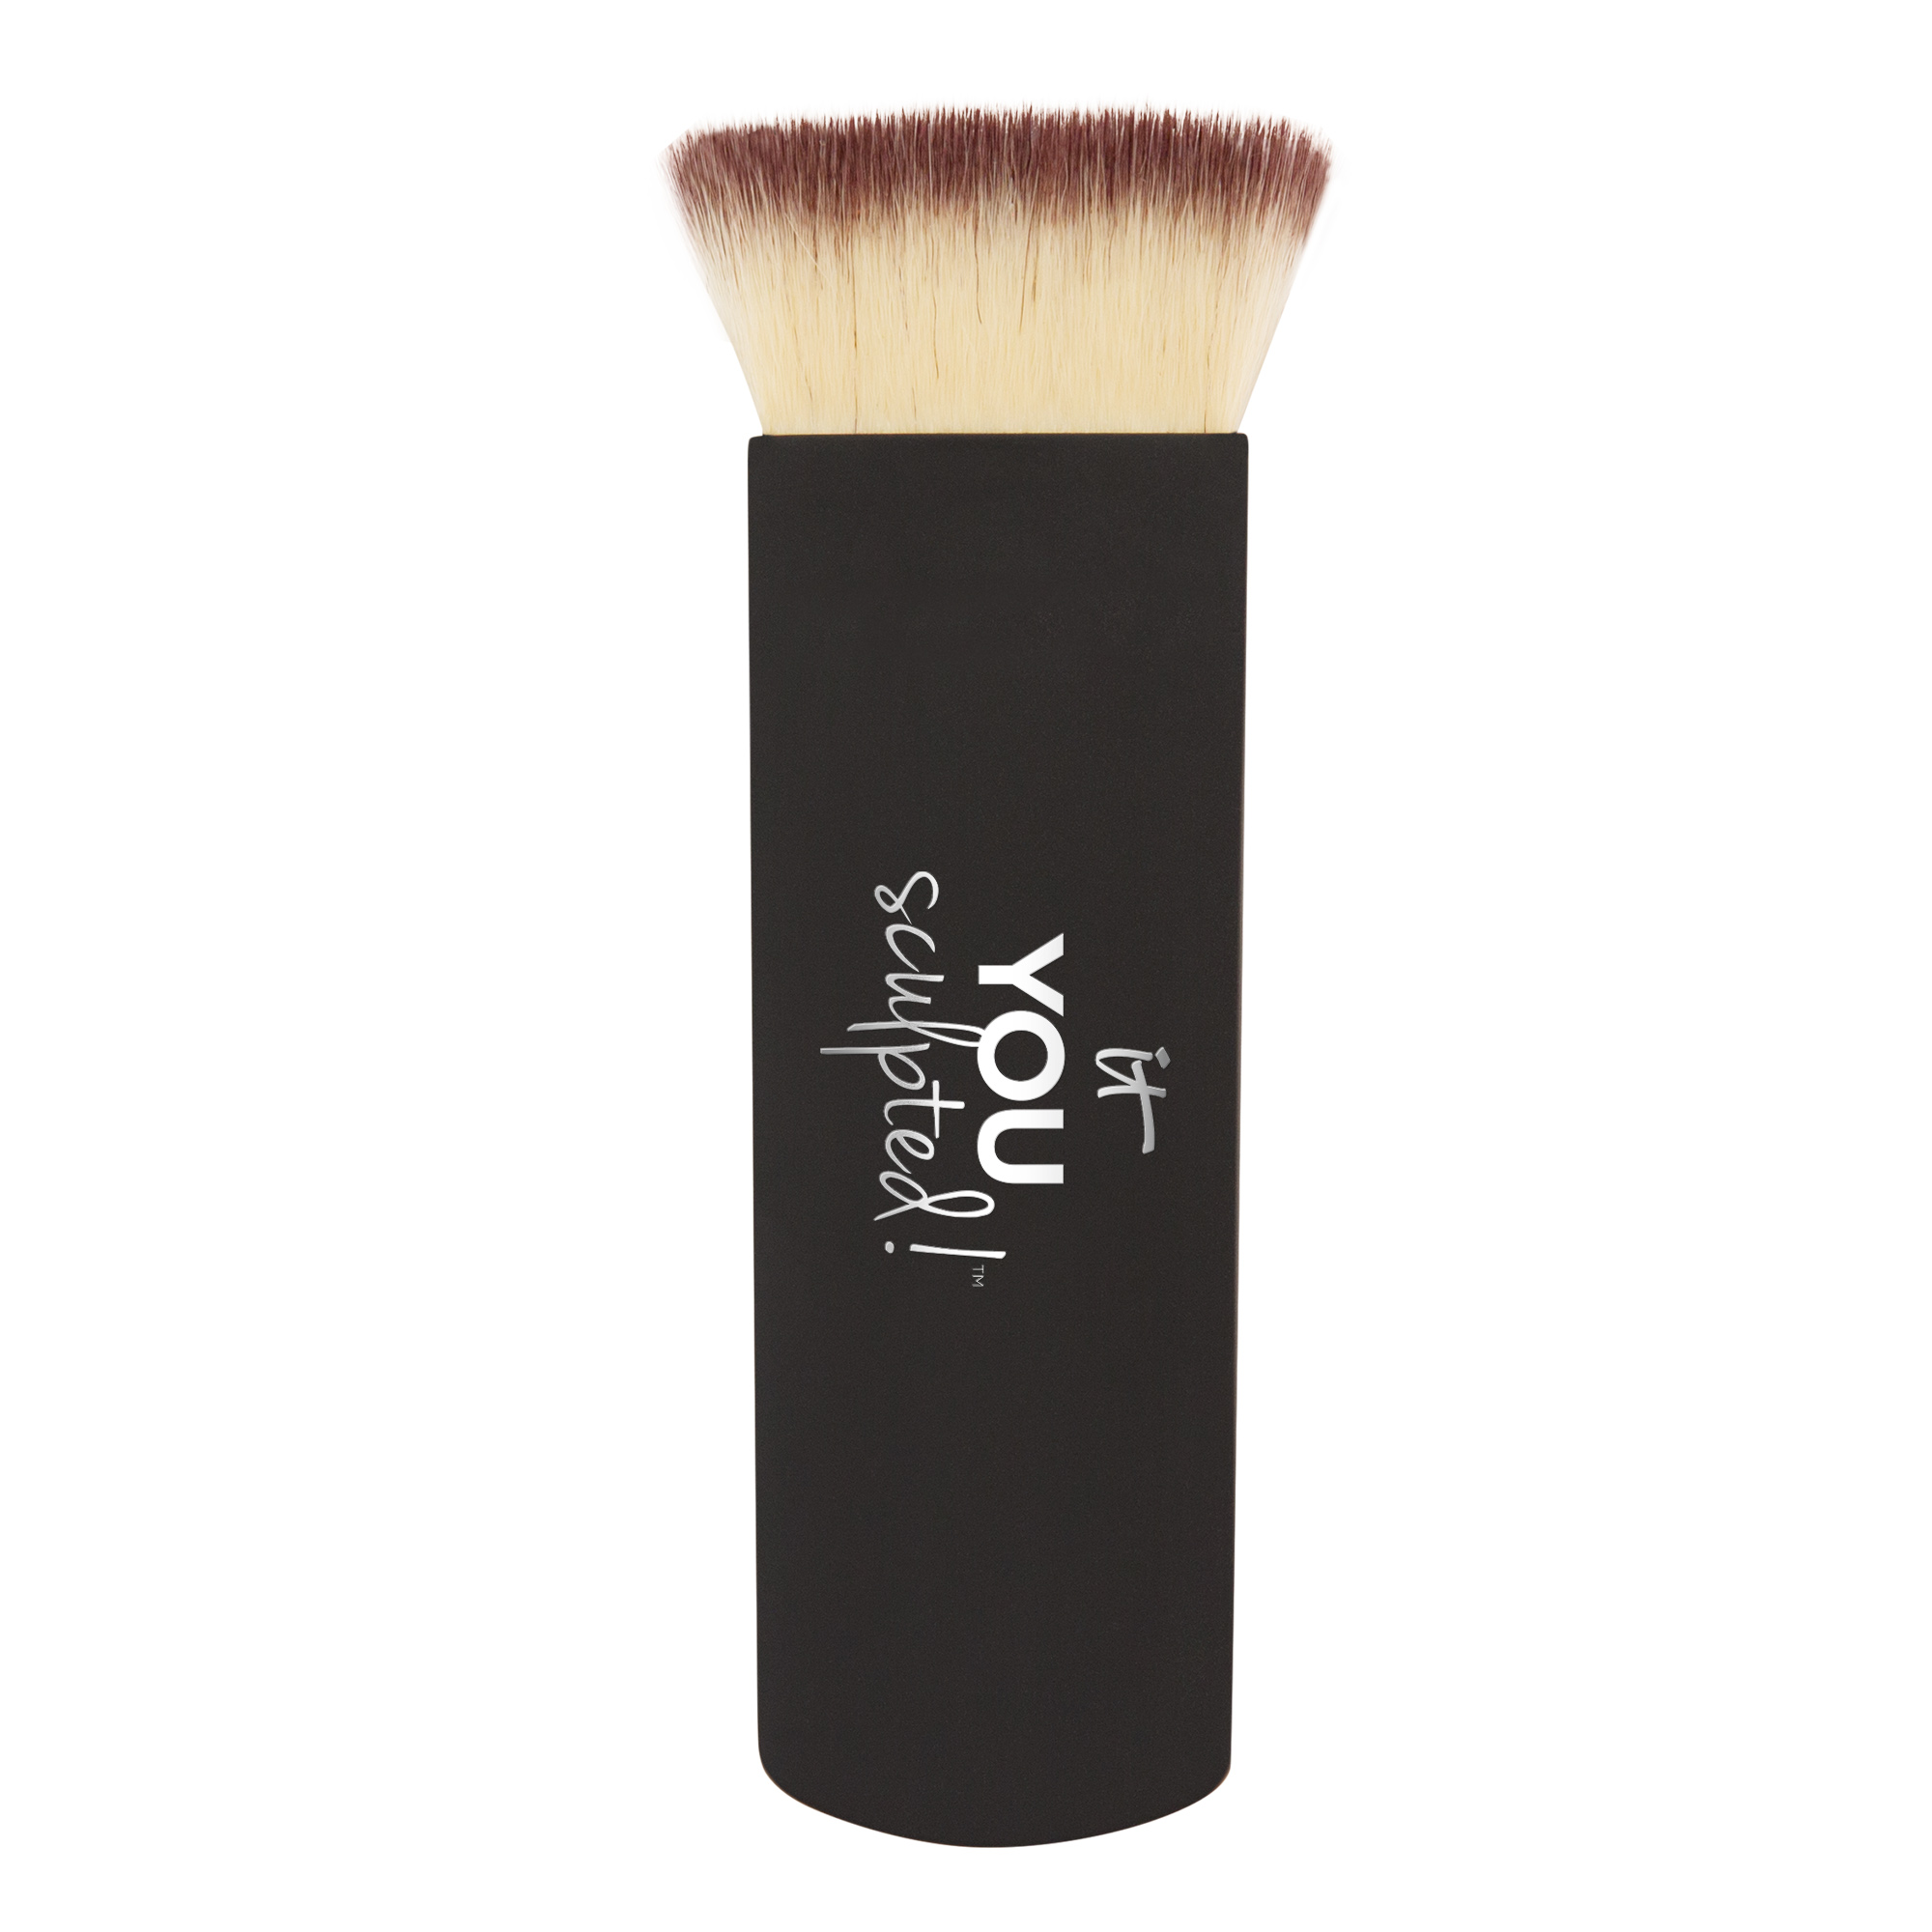 Heavenly Luxe™ You Sculpted!™ You Sculpted Contour & Highlight Brush #18